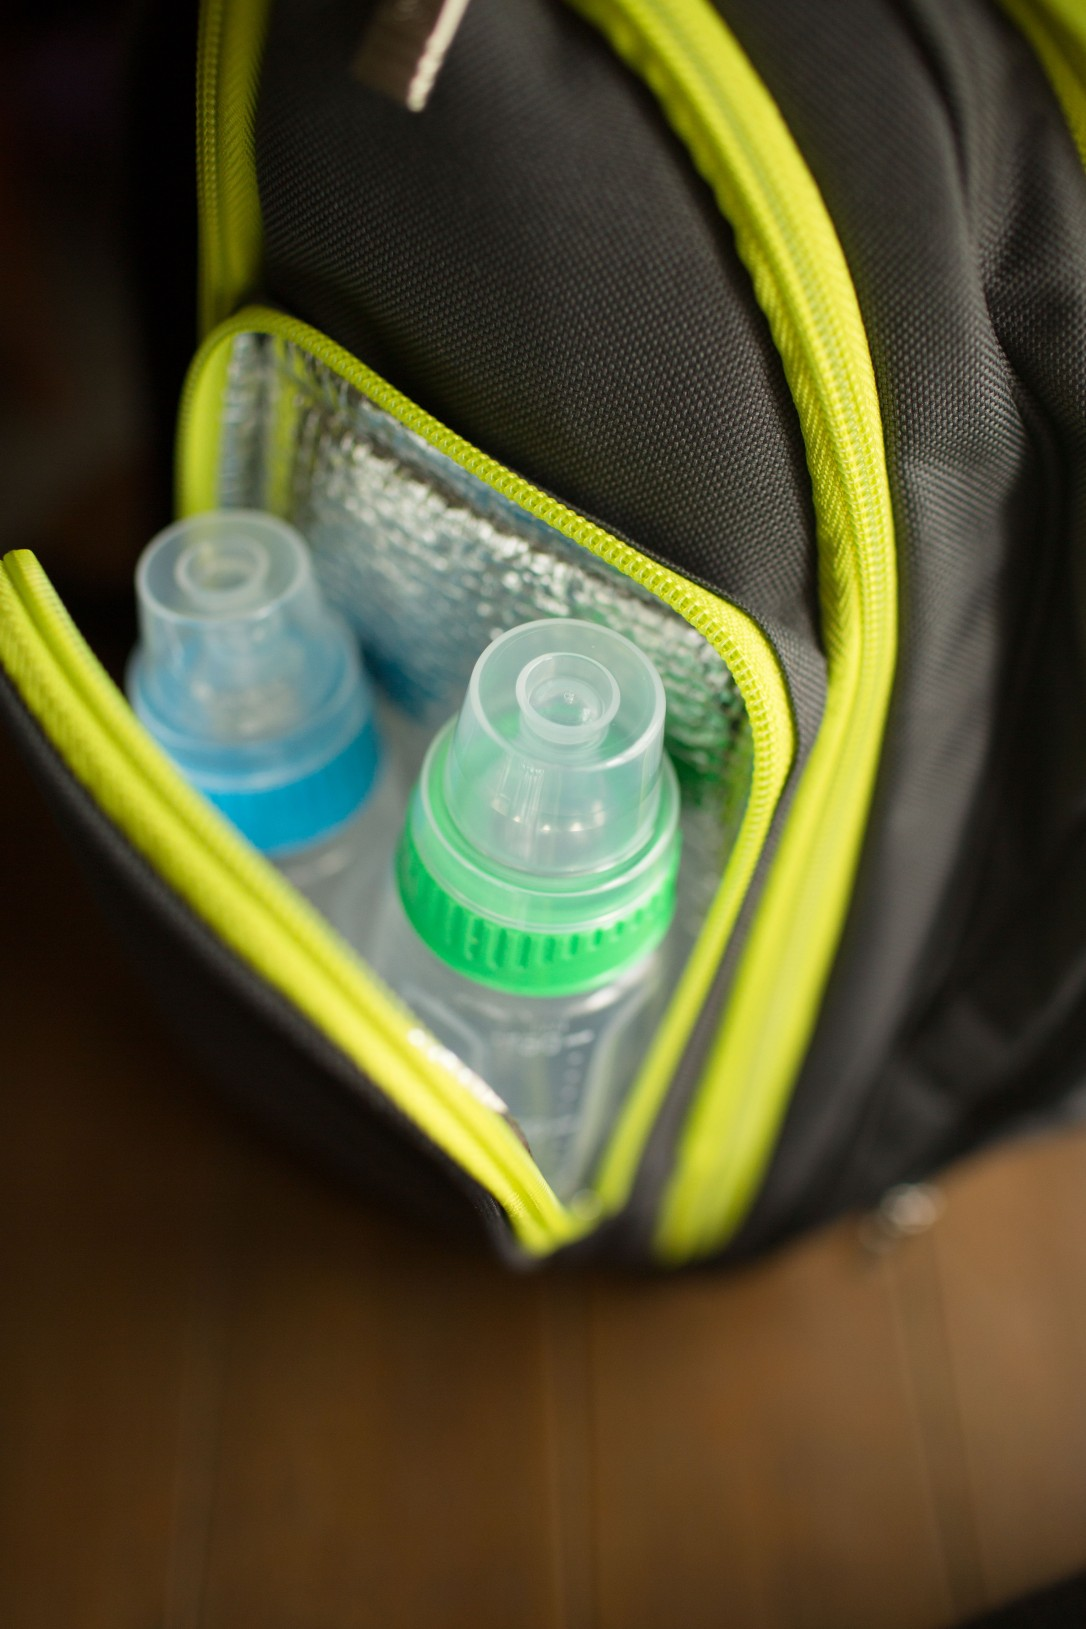 Gerber First Essential Bottles, Backpack Diaper Bag, Gender Neutral